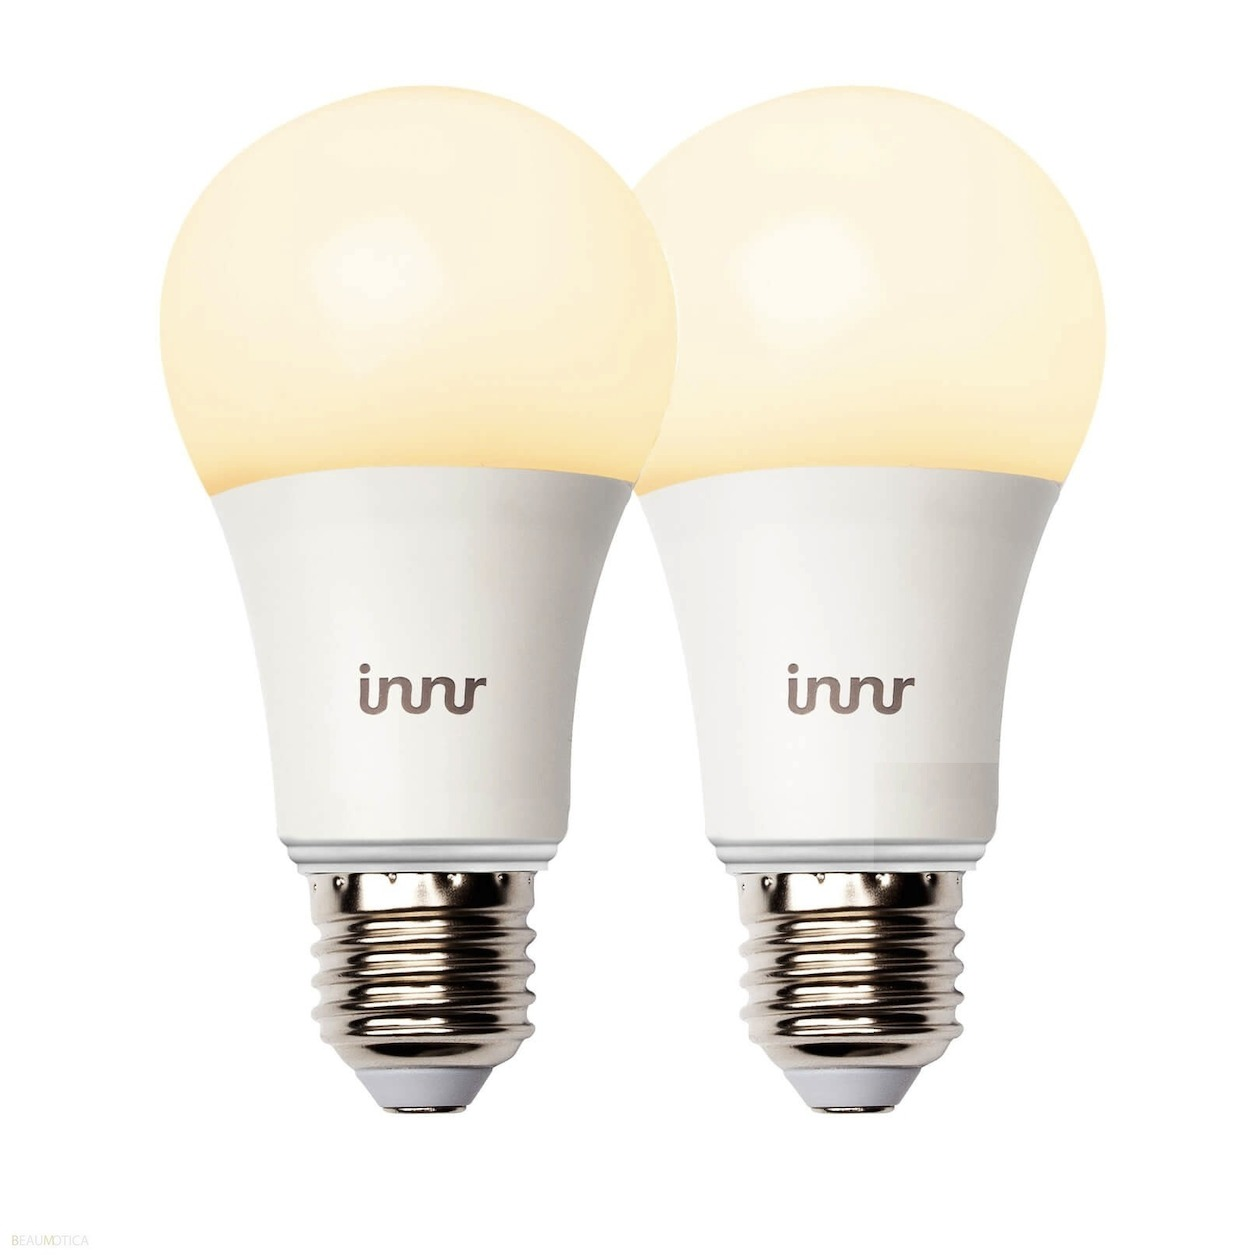 Innr smartverlichting Smart LED-bulb (E27) duo pack - RB 165